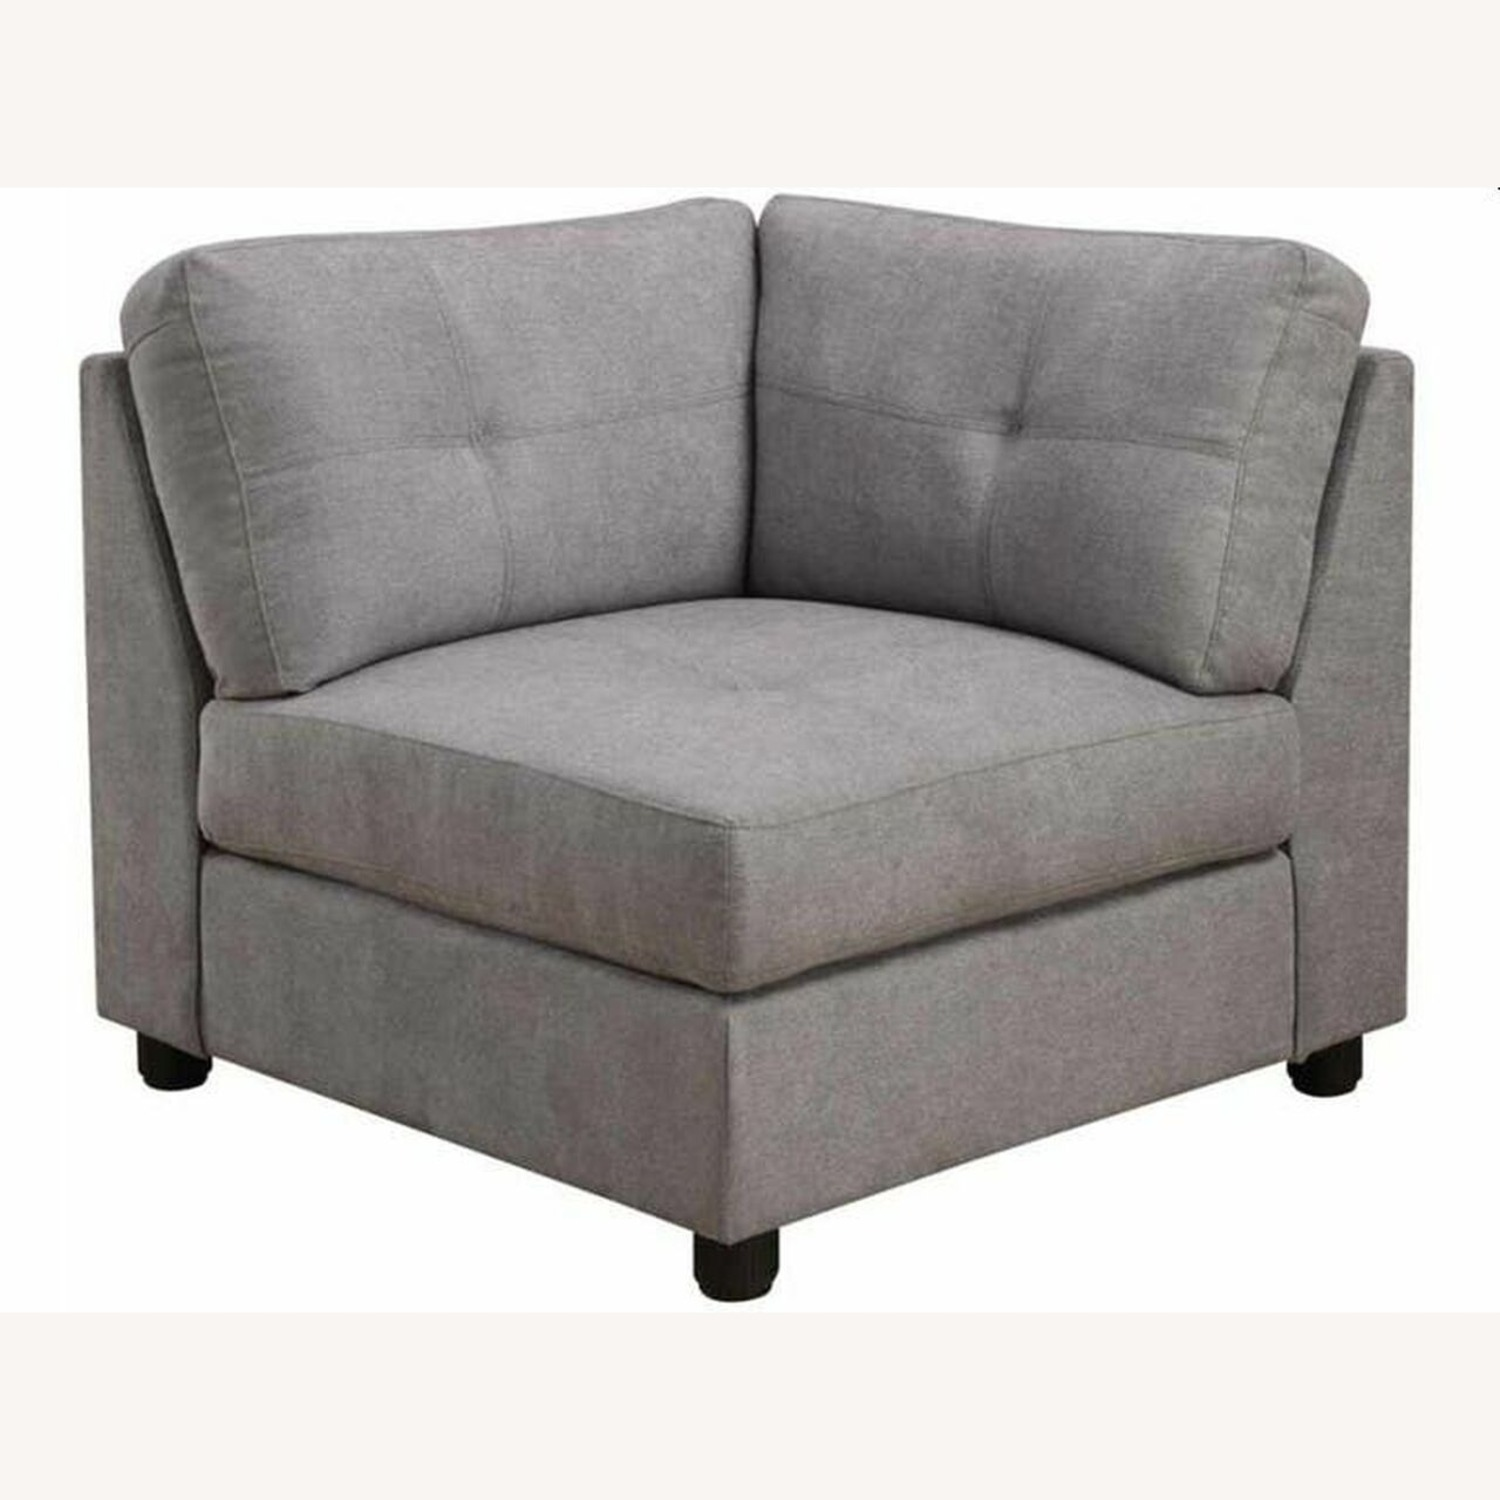 7-Piece Sectional In Dove Chenille Fabric - image-4